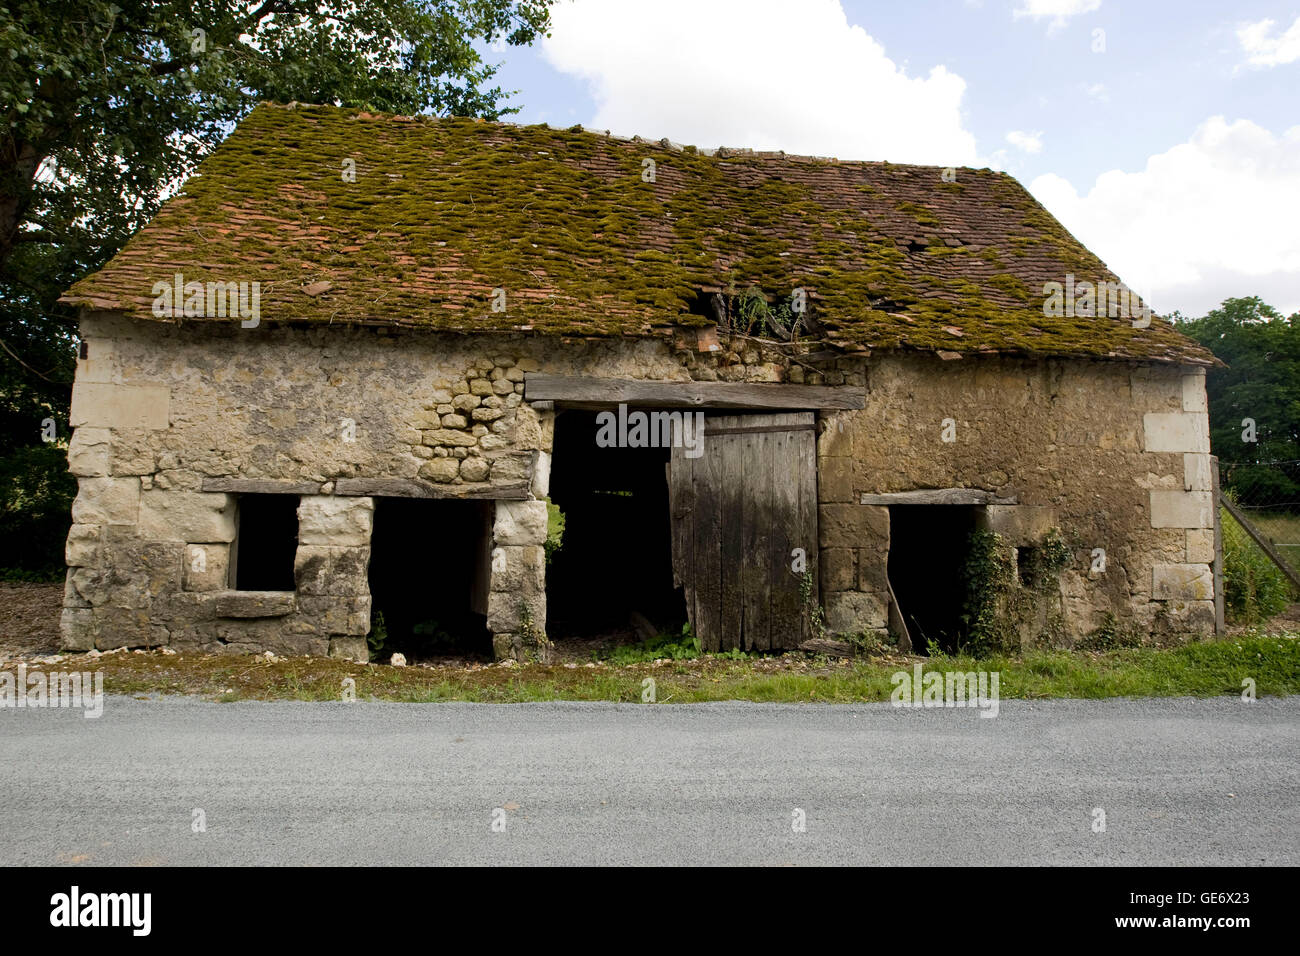 View of the ruin of an old house near Chenonceaux, France, 25 June 2008. - Stock Image